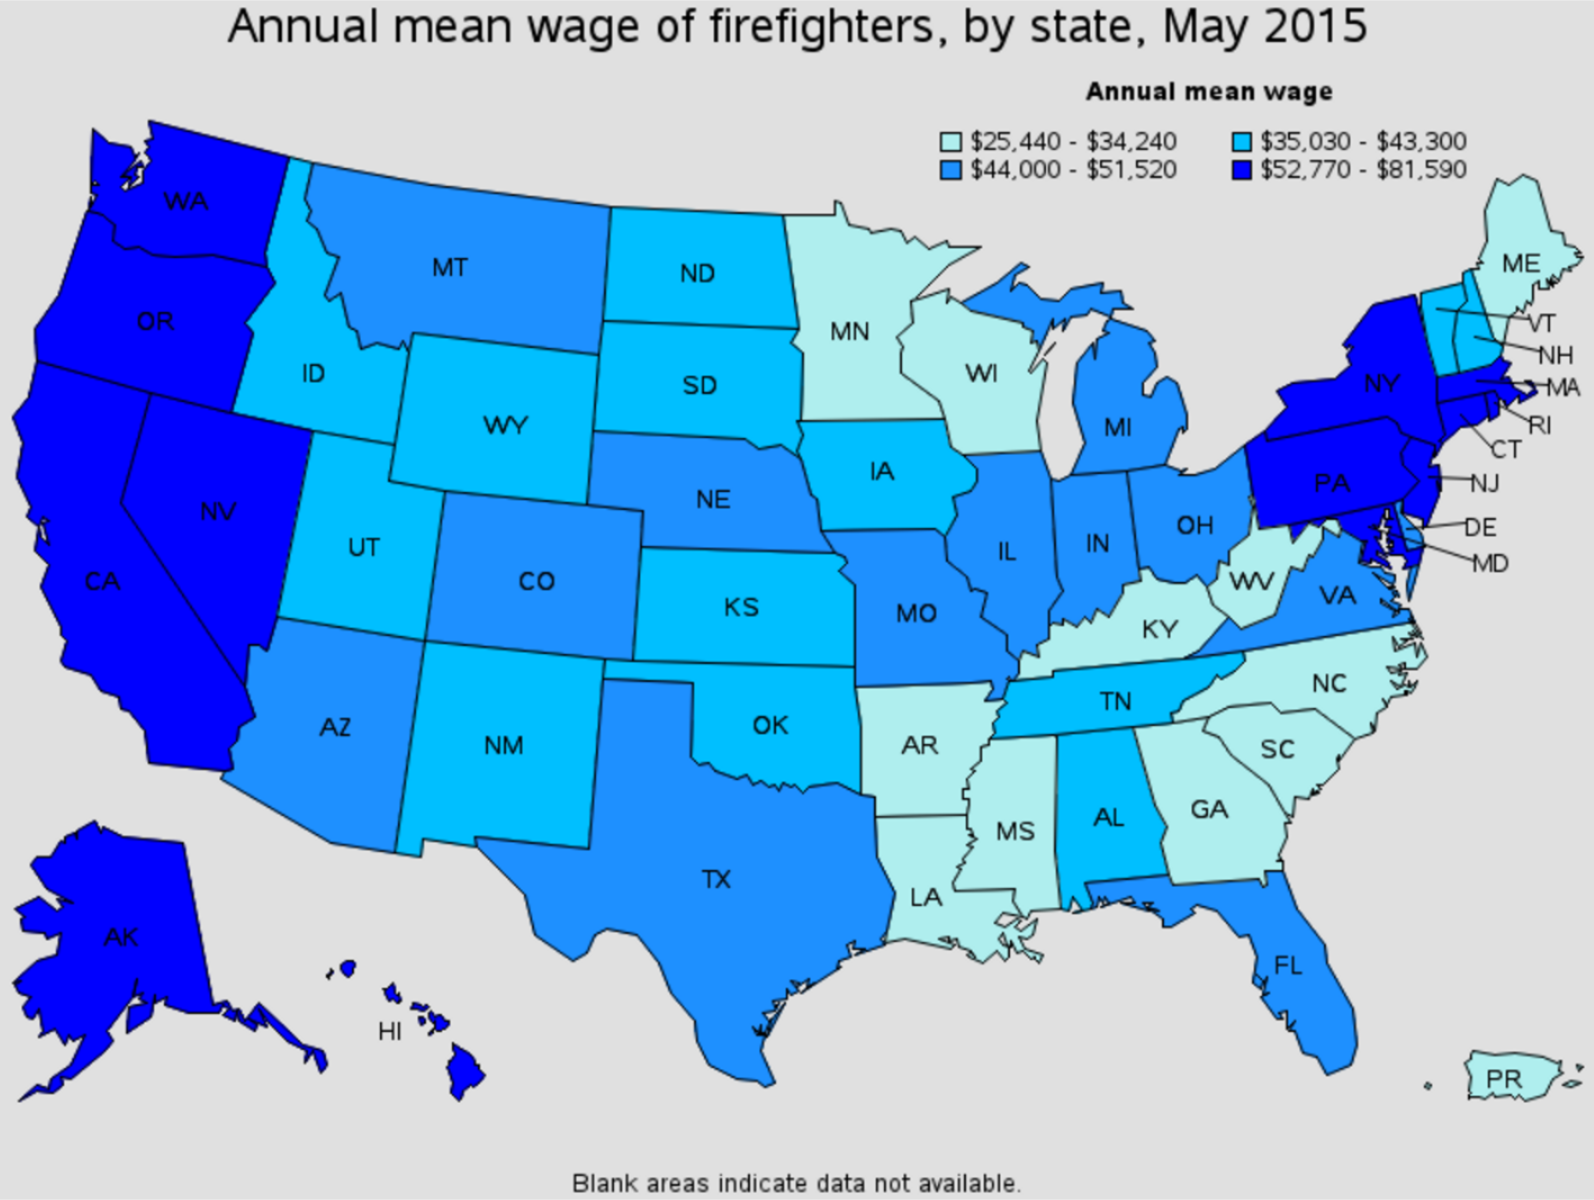 firefighter average salary by state Nashville Tennessee